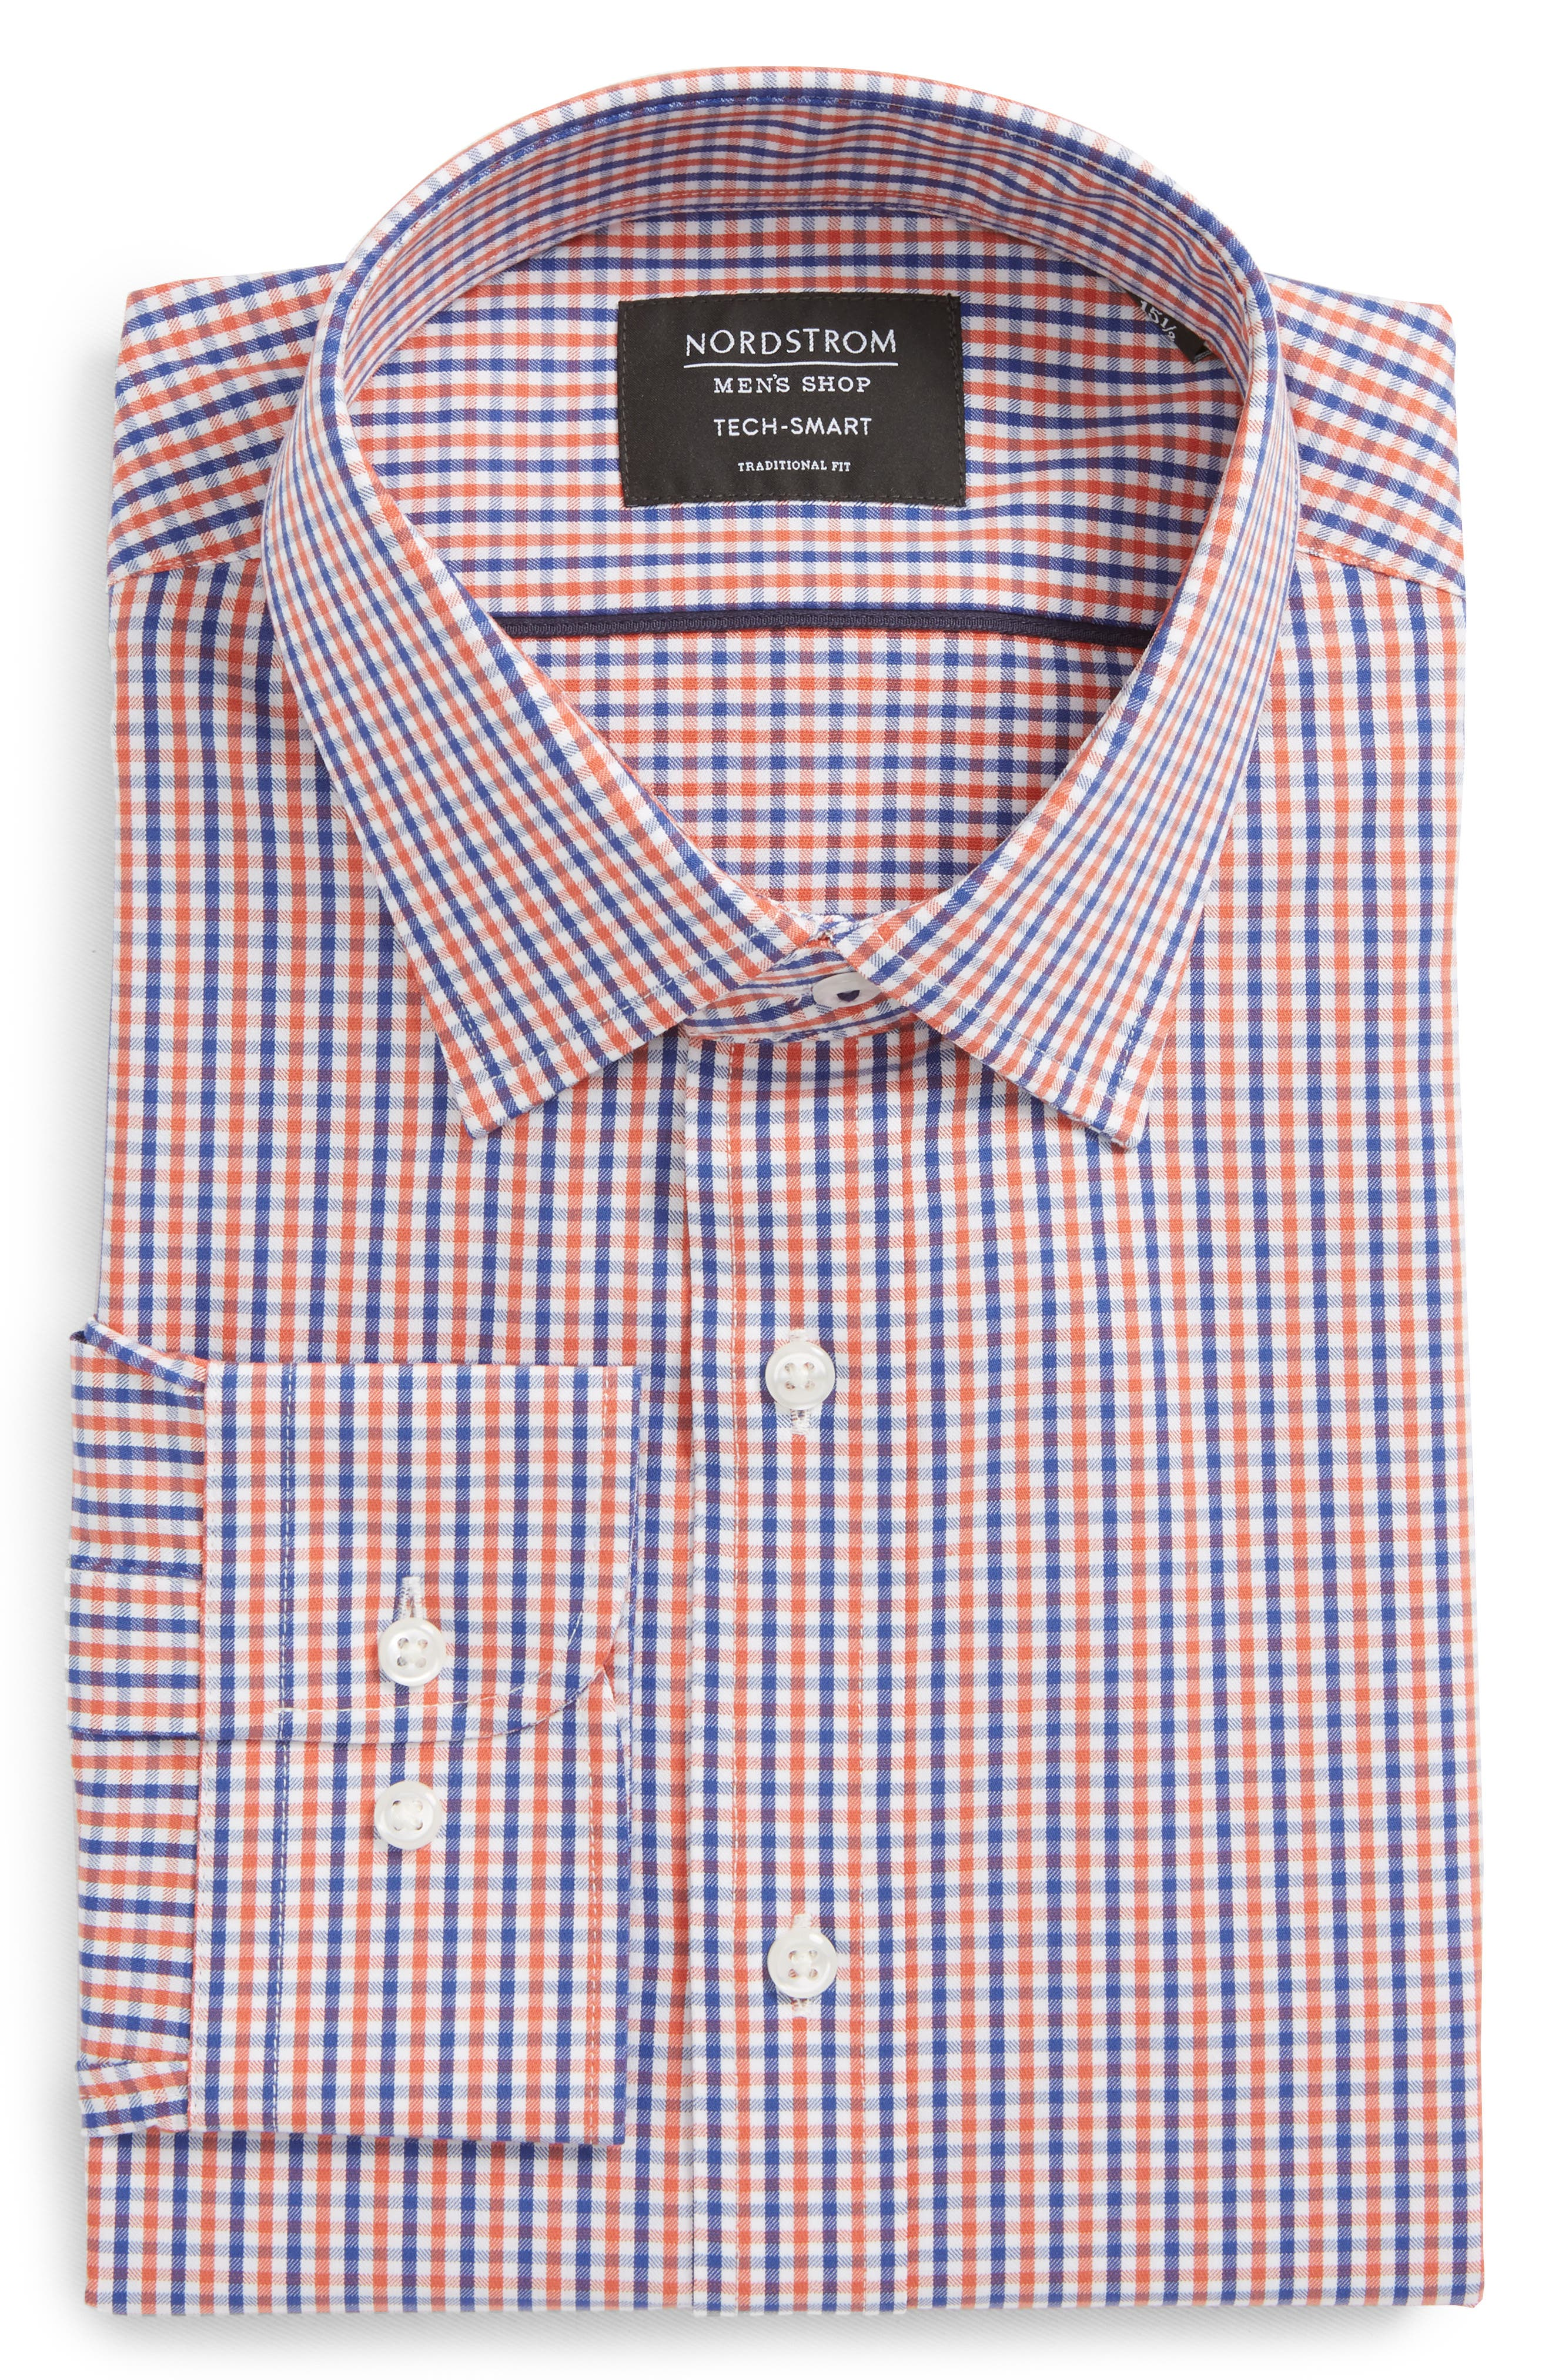 Nordstrom Men's Shop Tech-Smart Traditional Fit Stretch Check Dress Shirt